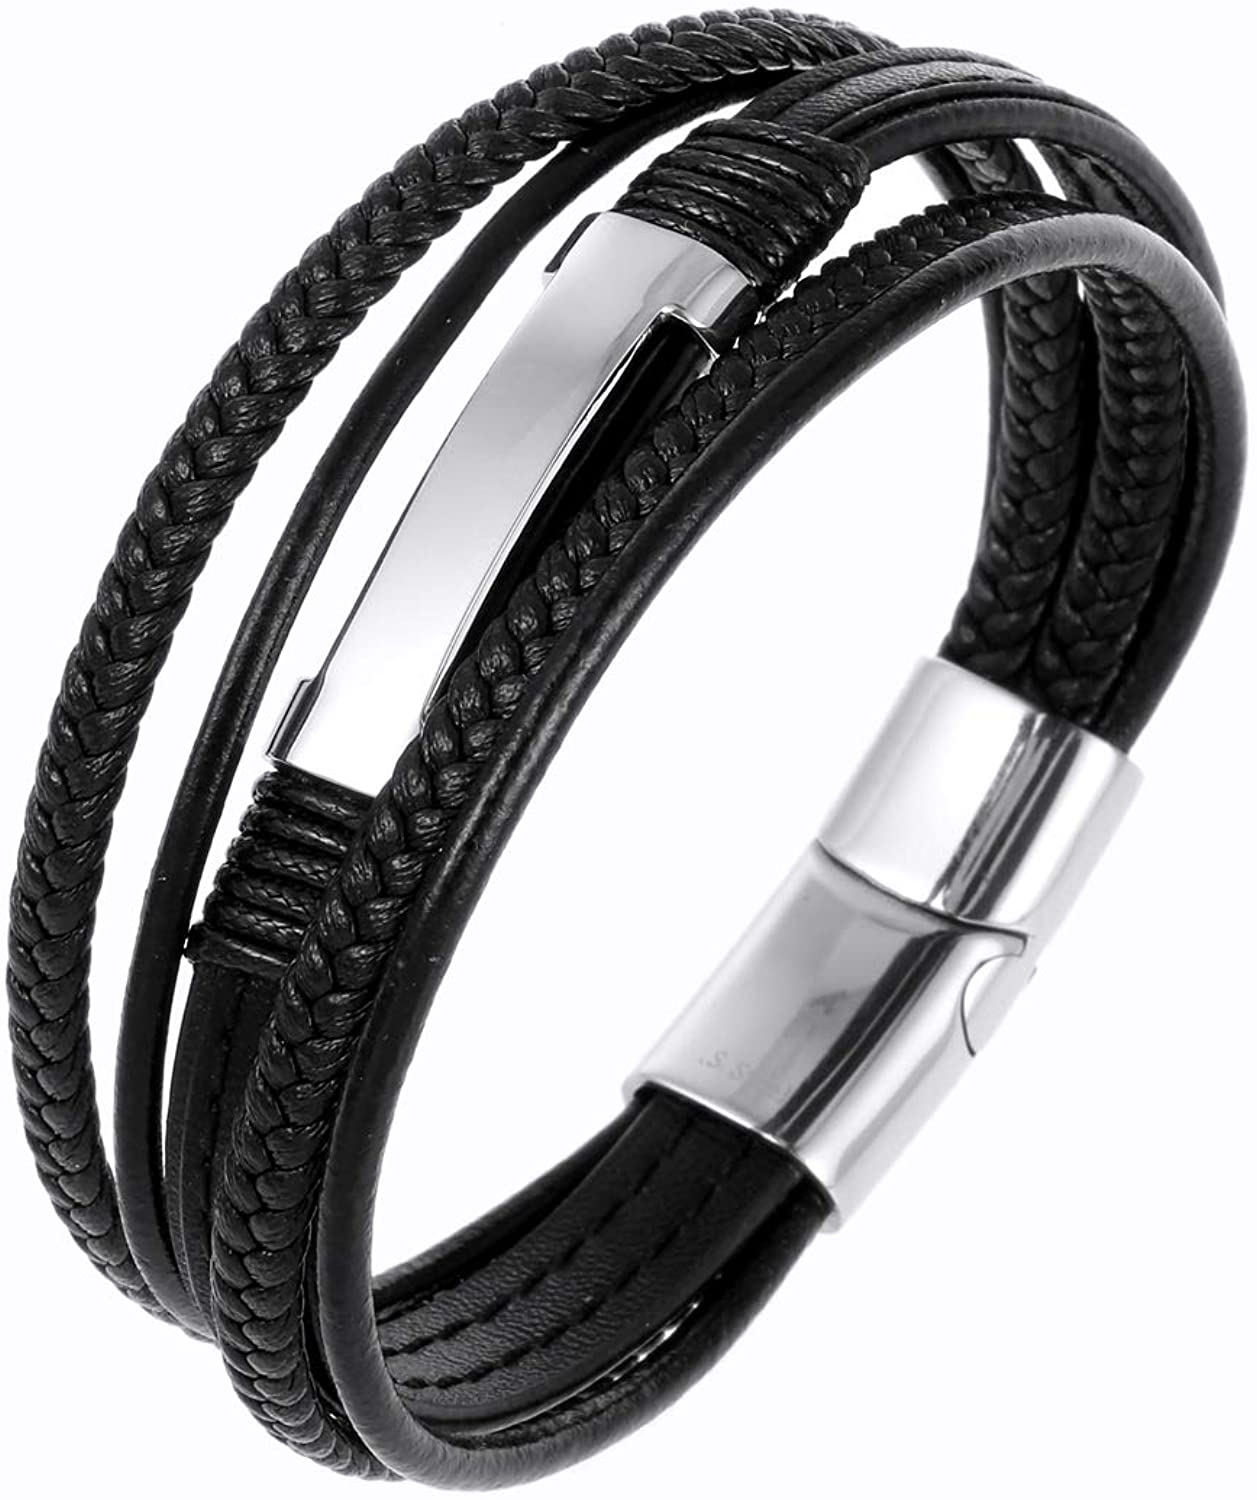 N&D Men's Leather Bracelet, with Magnetic 361L Stainless Steel Buckle, Cowhide Multi-Layer Braided Leather Men's Bracelet, Charm Cuff Bracelet, Personality Bracelet